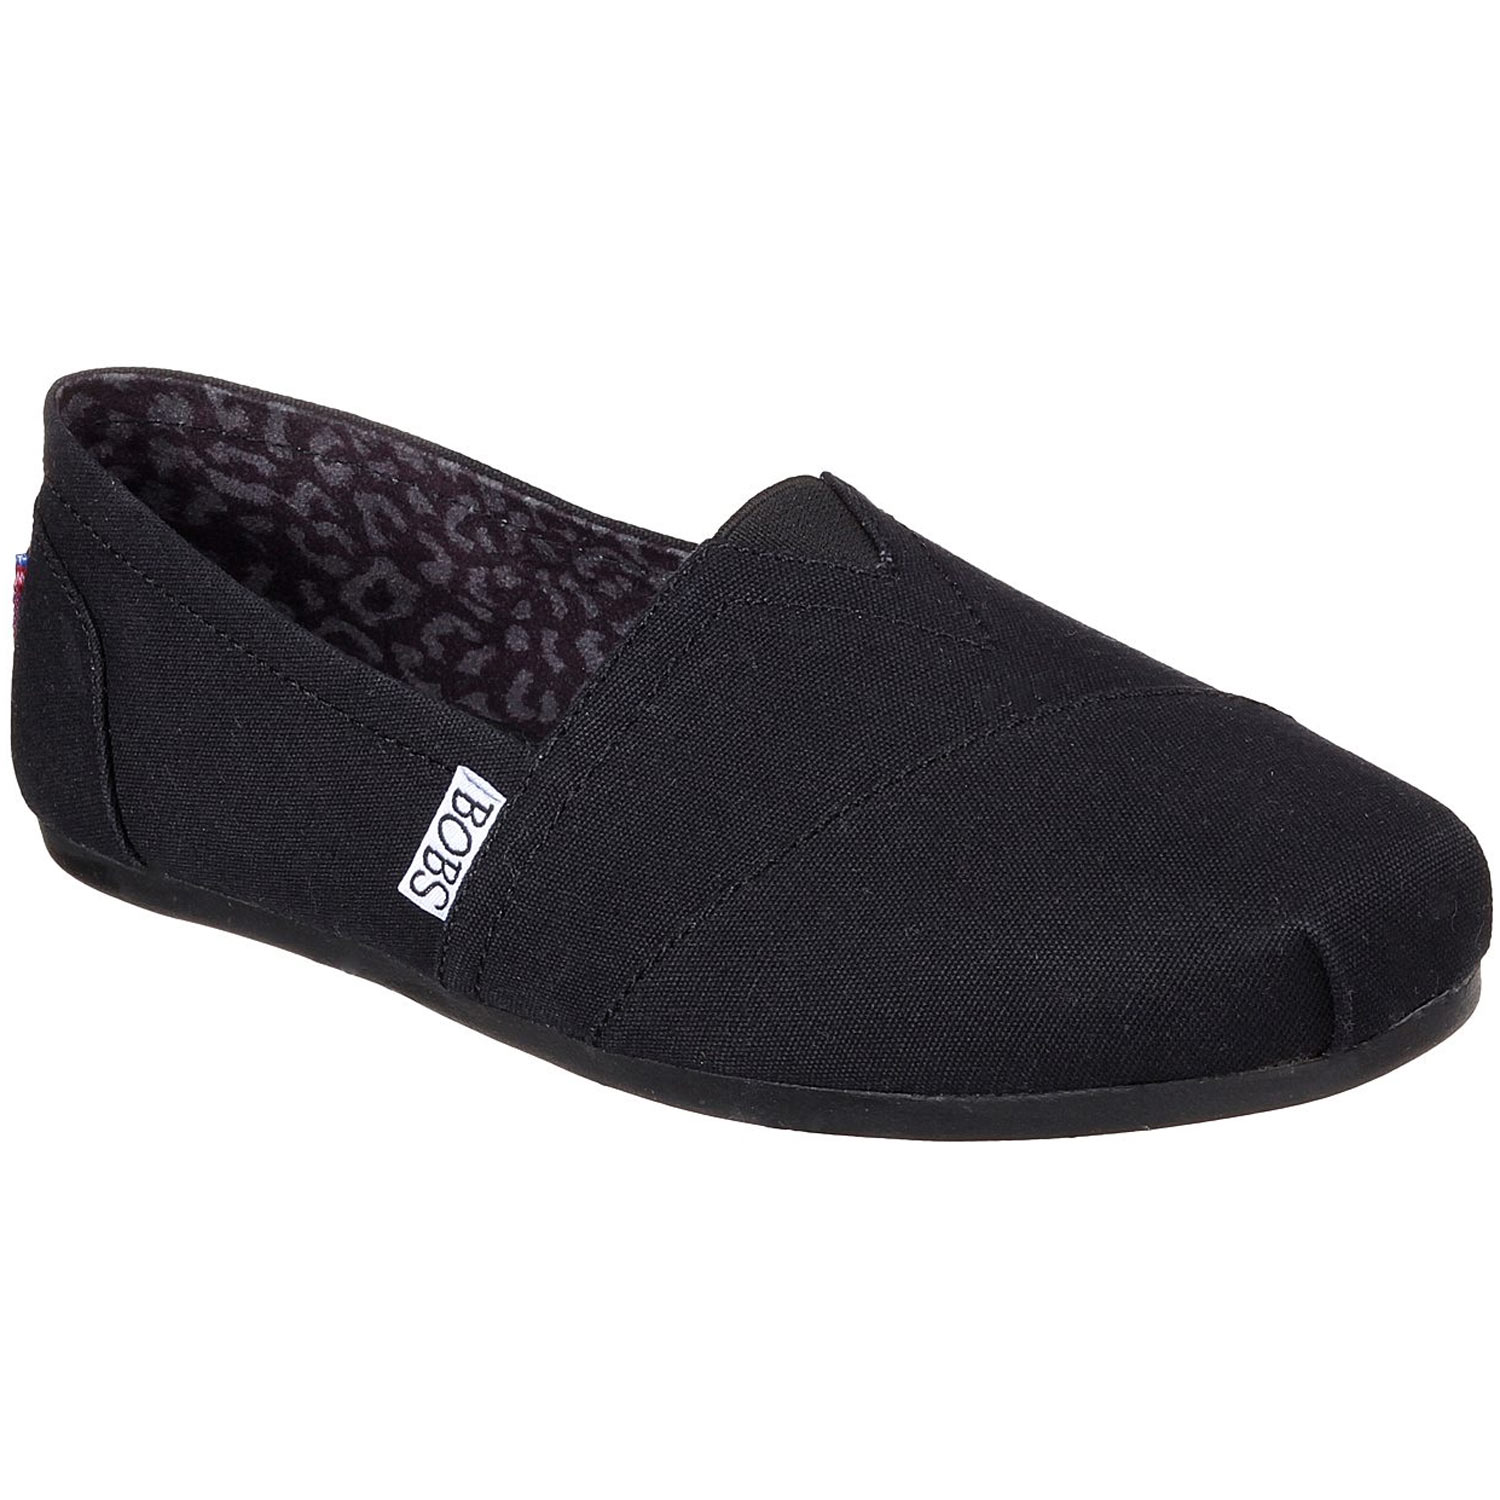 Skechers BOBS Plush Peace and Love